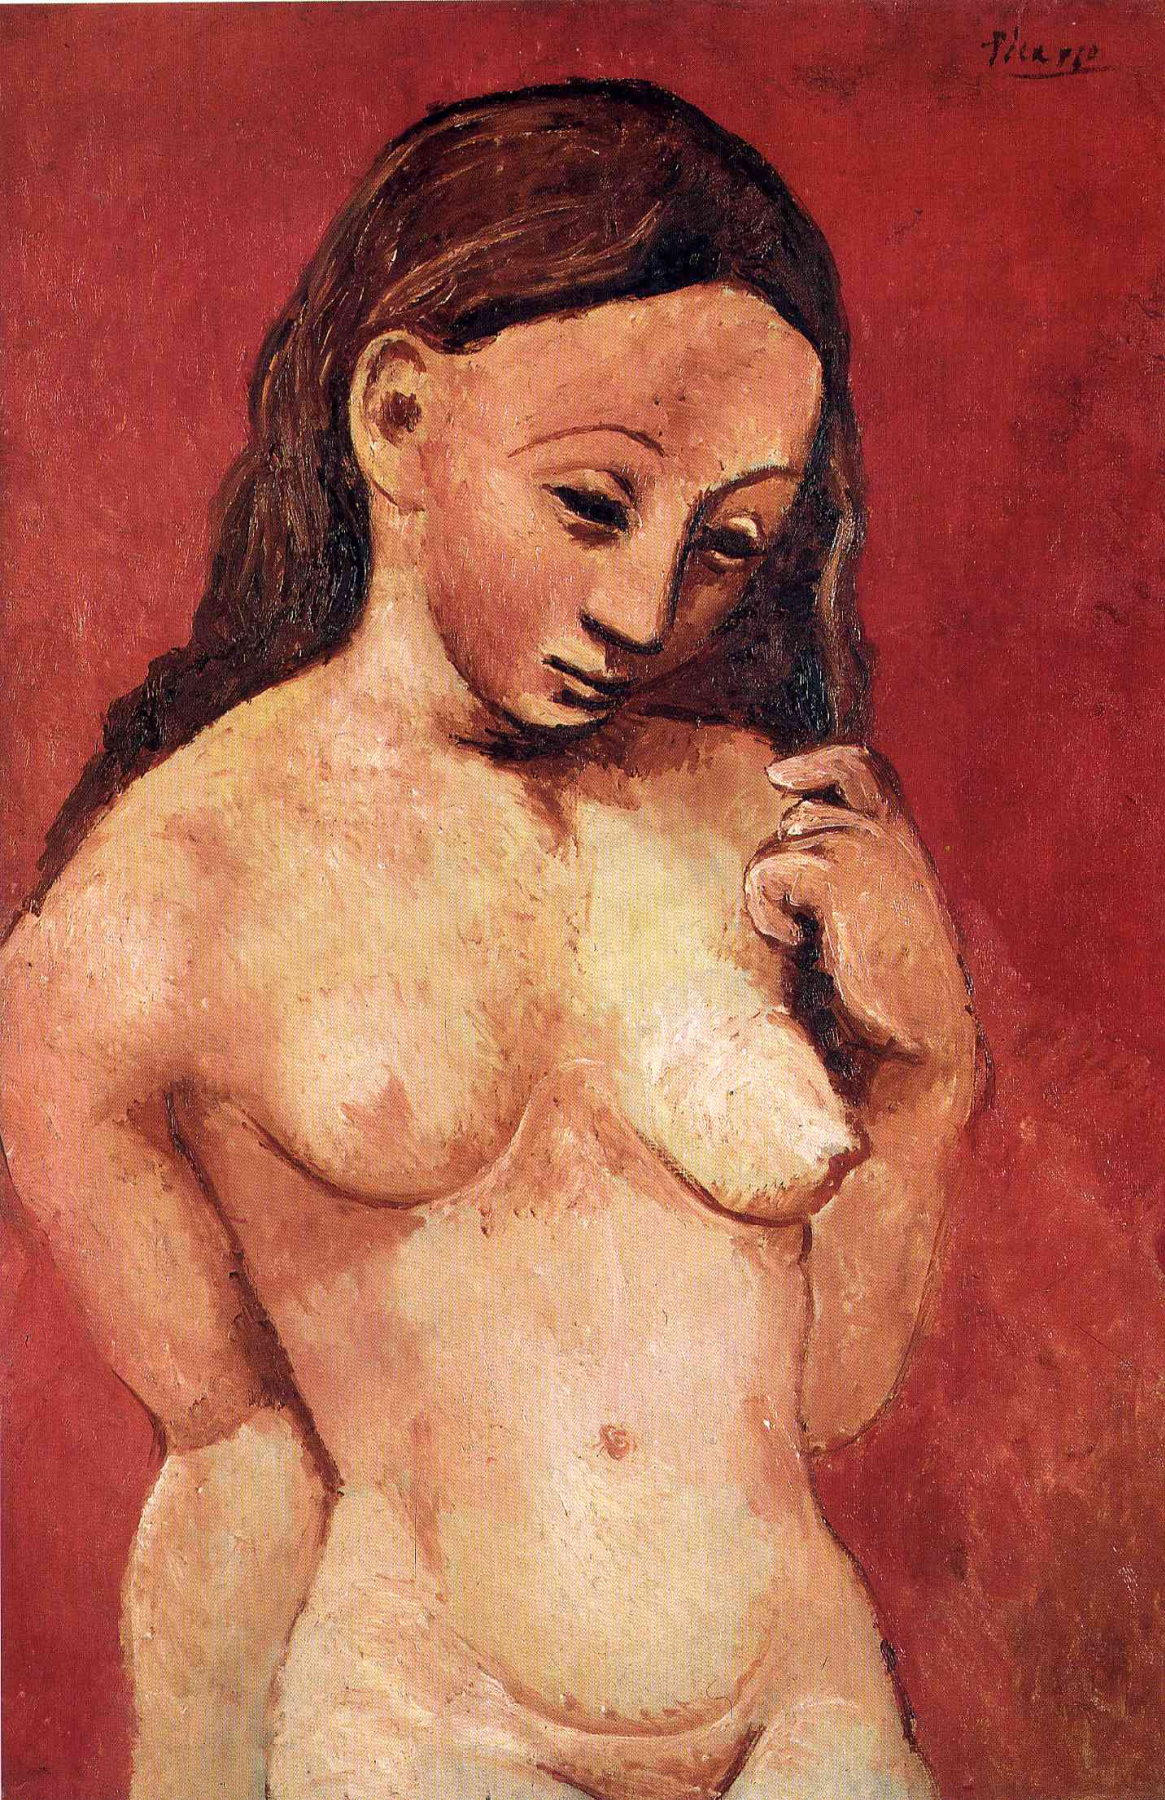 Pablo Picasso. Nude on a red background